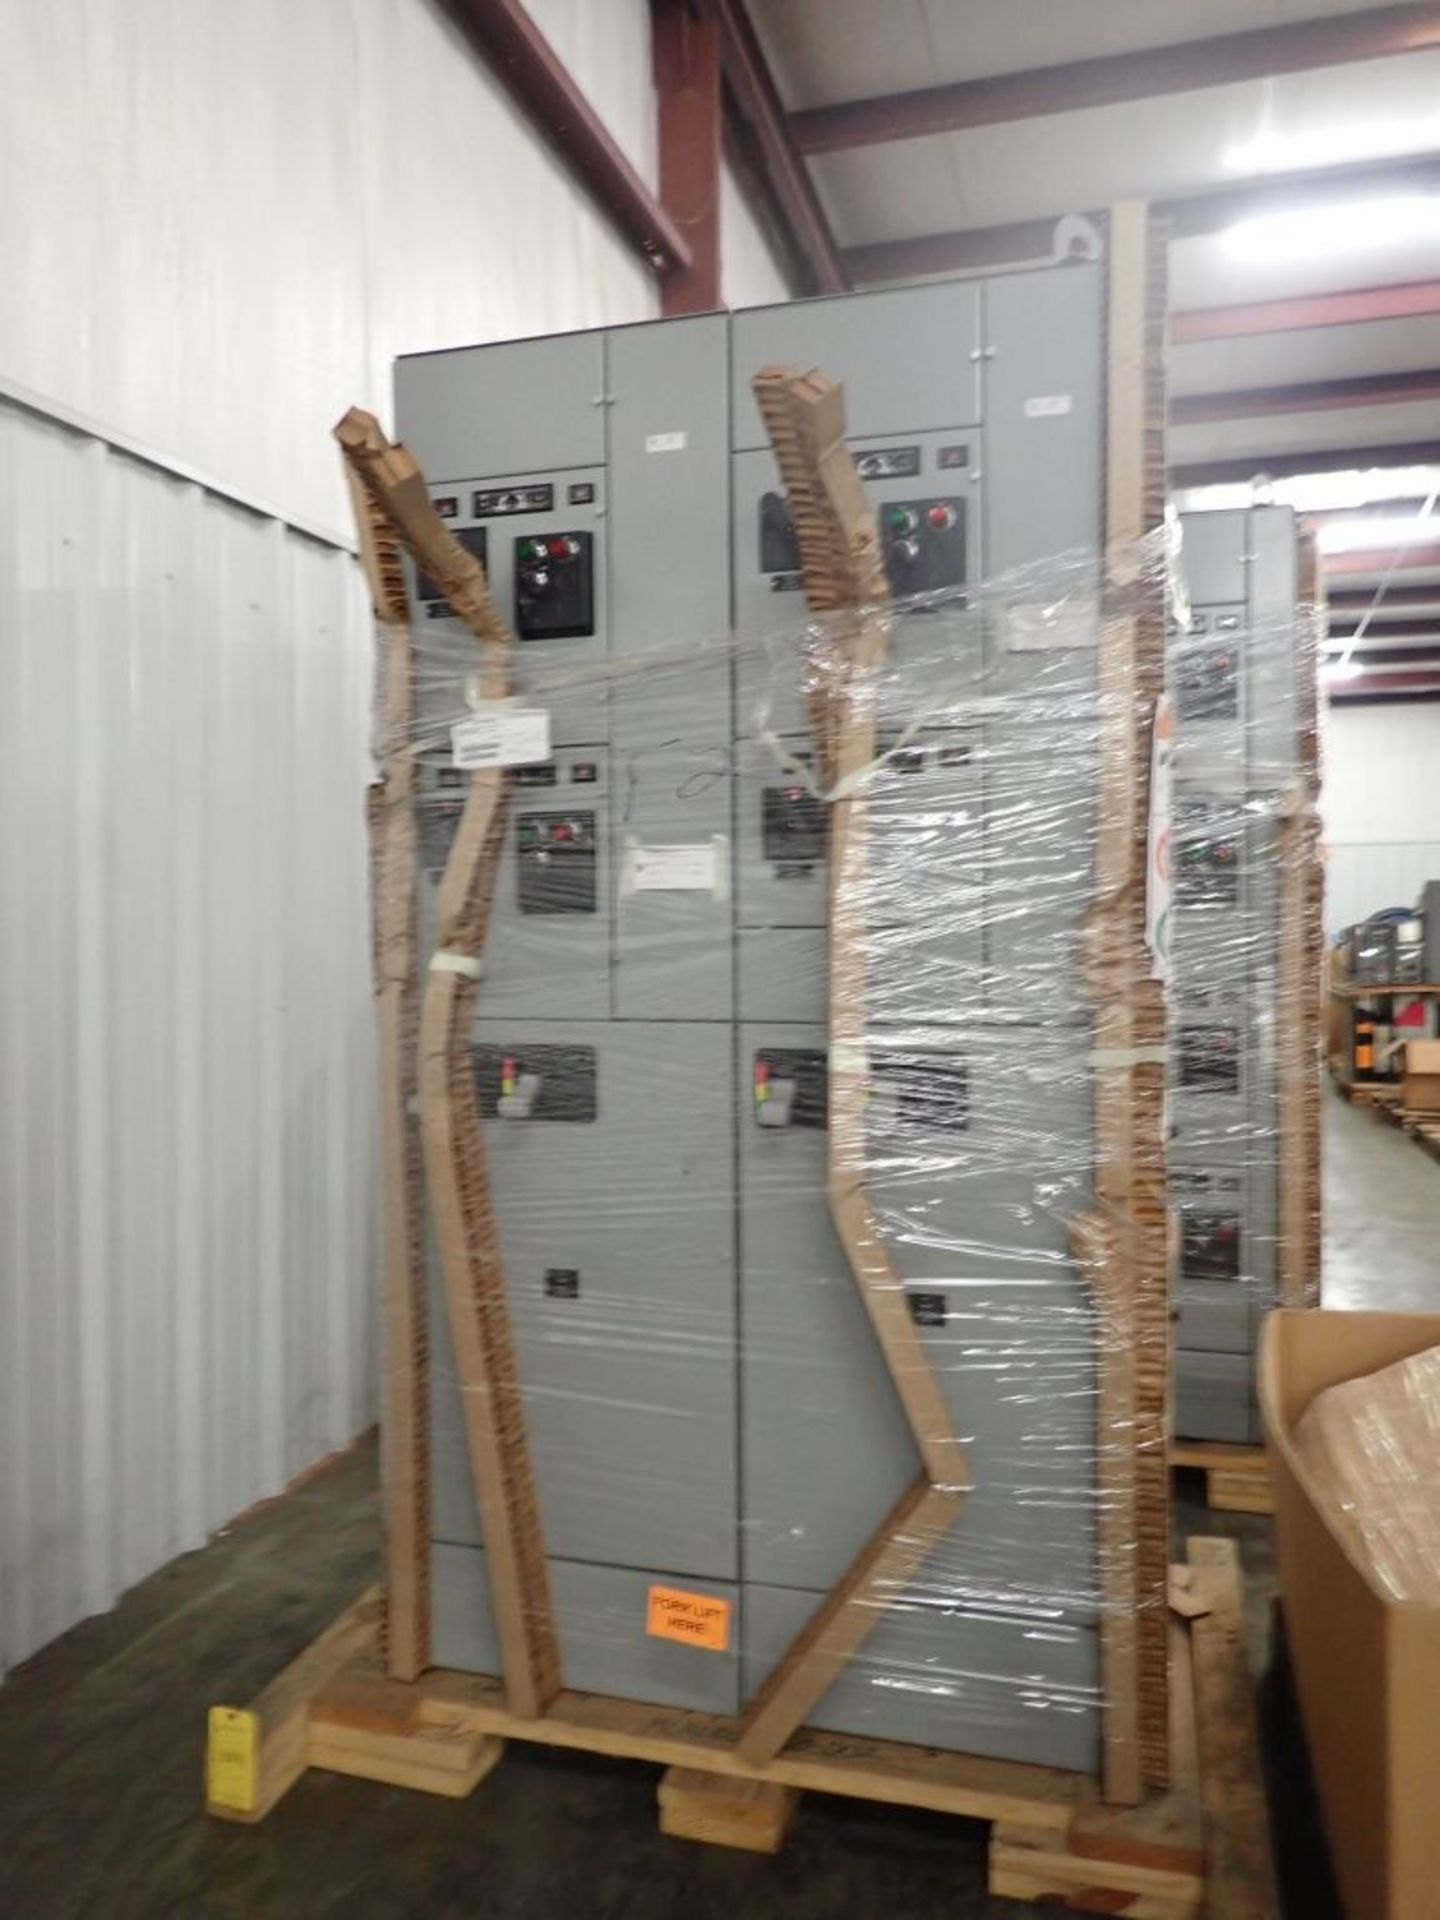 Eaton Freedom 2100 Series Motor Control Center | (2) F208-30A; (1) F208-40A; (1) FDRB-50A; (2) - Image 3 of 37